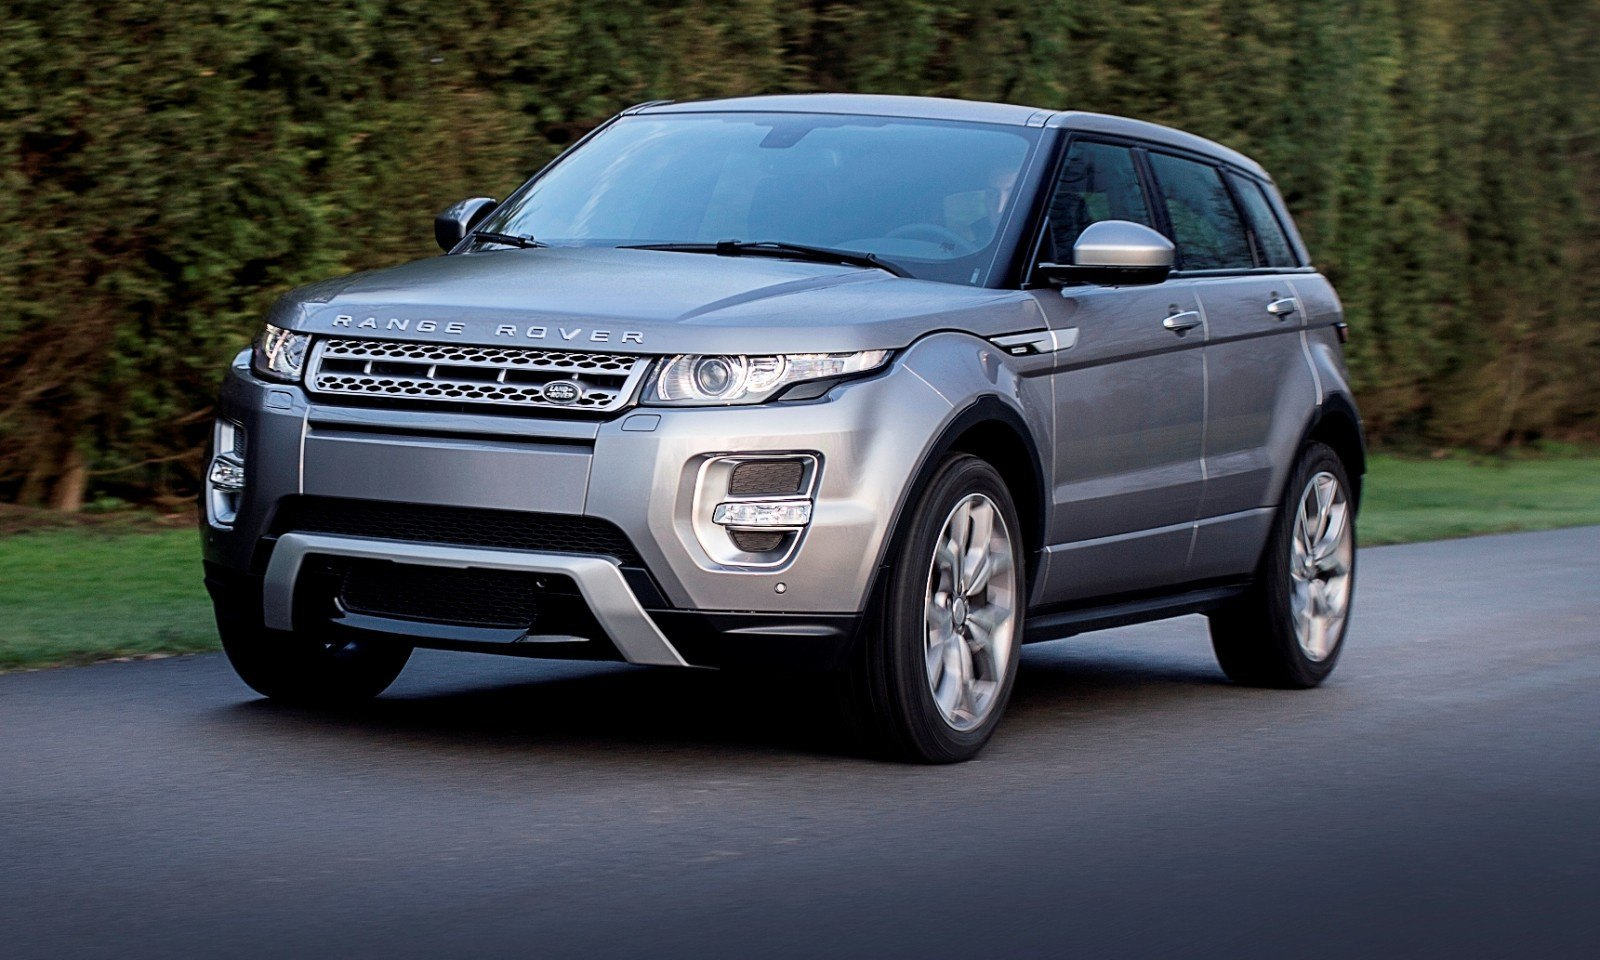 2015 Range Rover Evoque Gains 9-Speed Auto, Refreshed Info Tech and Boosted Engine HP 6